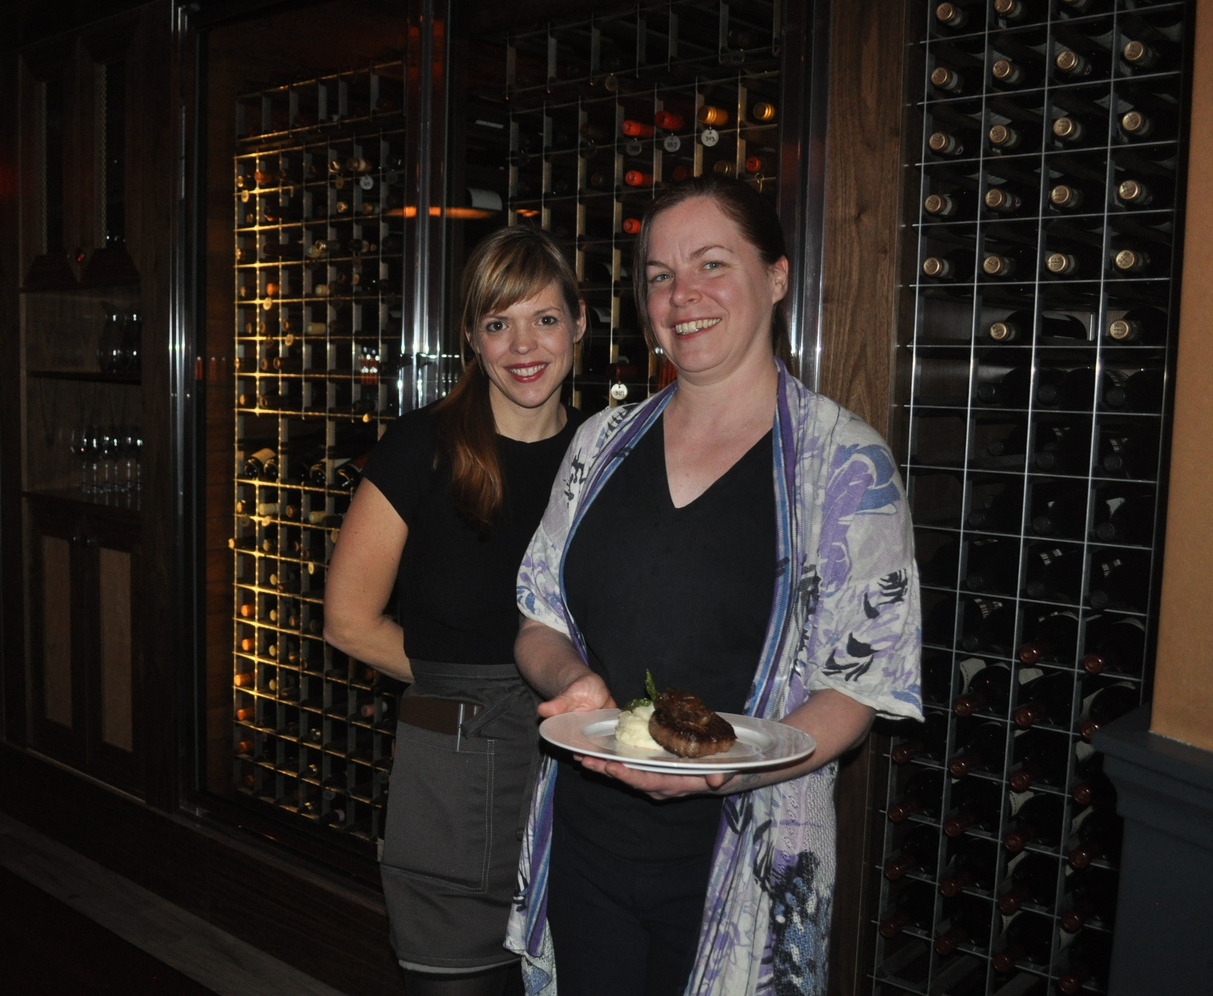 Waitress Justine Stokes and manager Kelly Danek present Red's organic filet mignon and the impressive wine rack, a focal point of the restaurant's dining room.